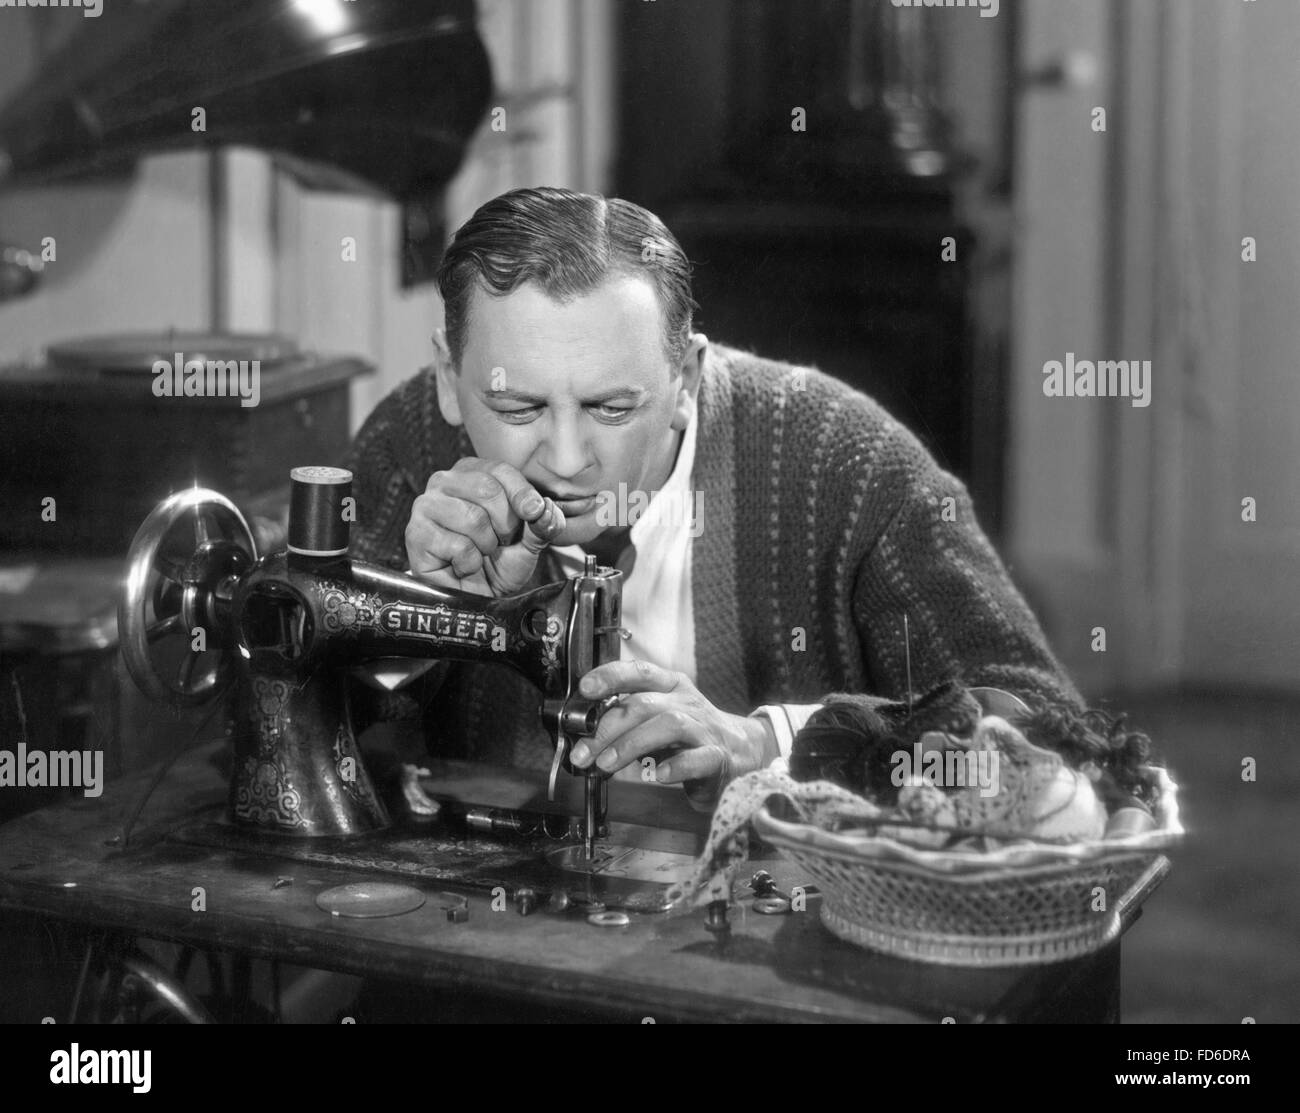 Man at a sewing machine, 1930s - Stock Image